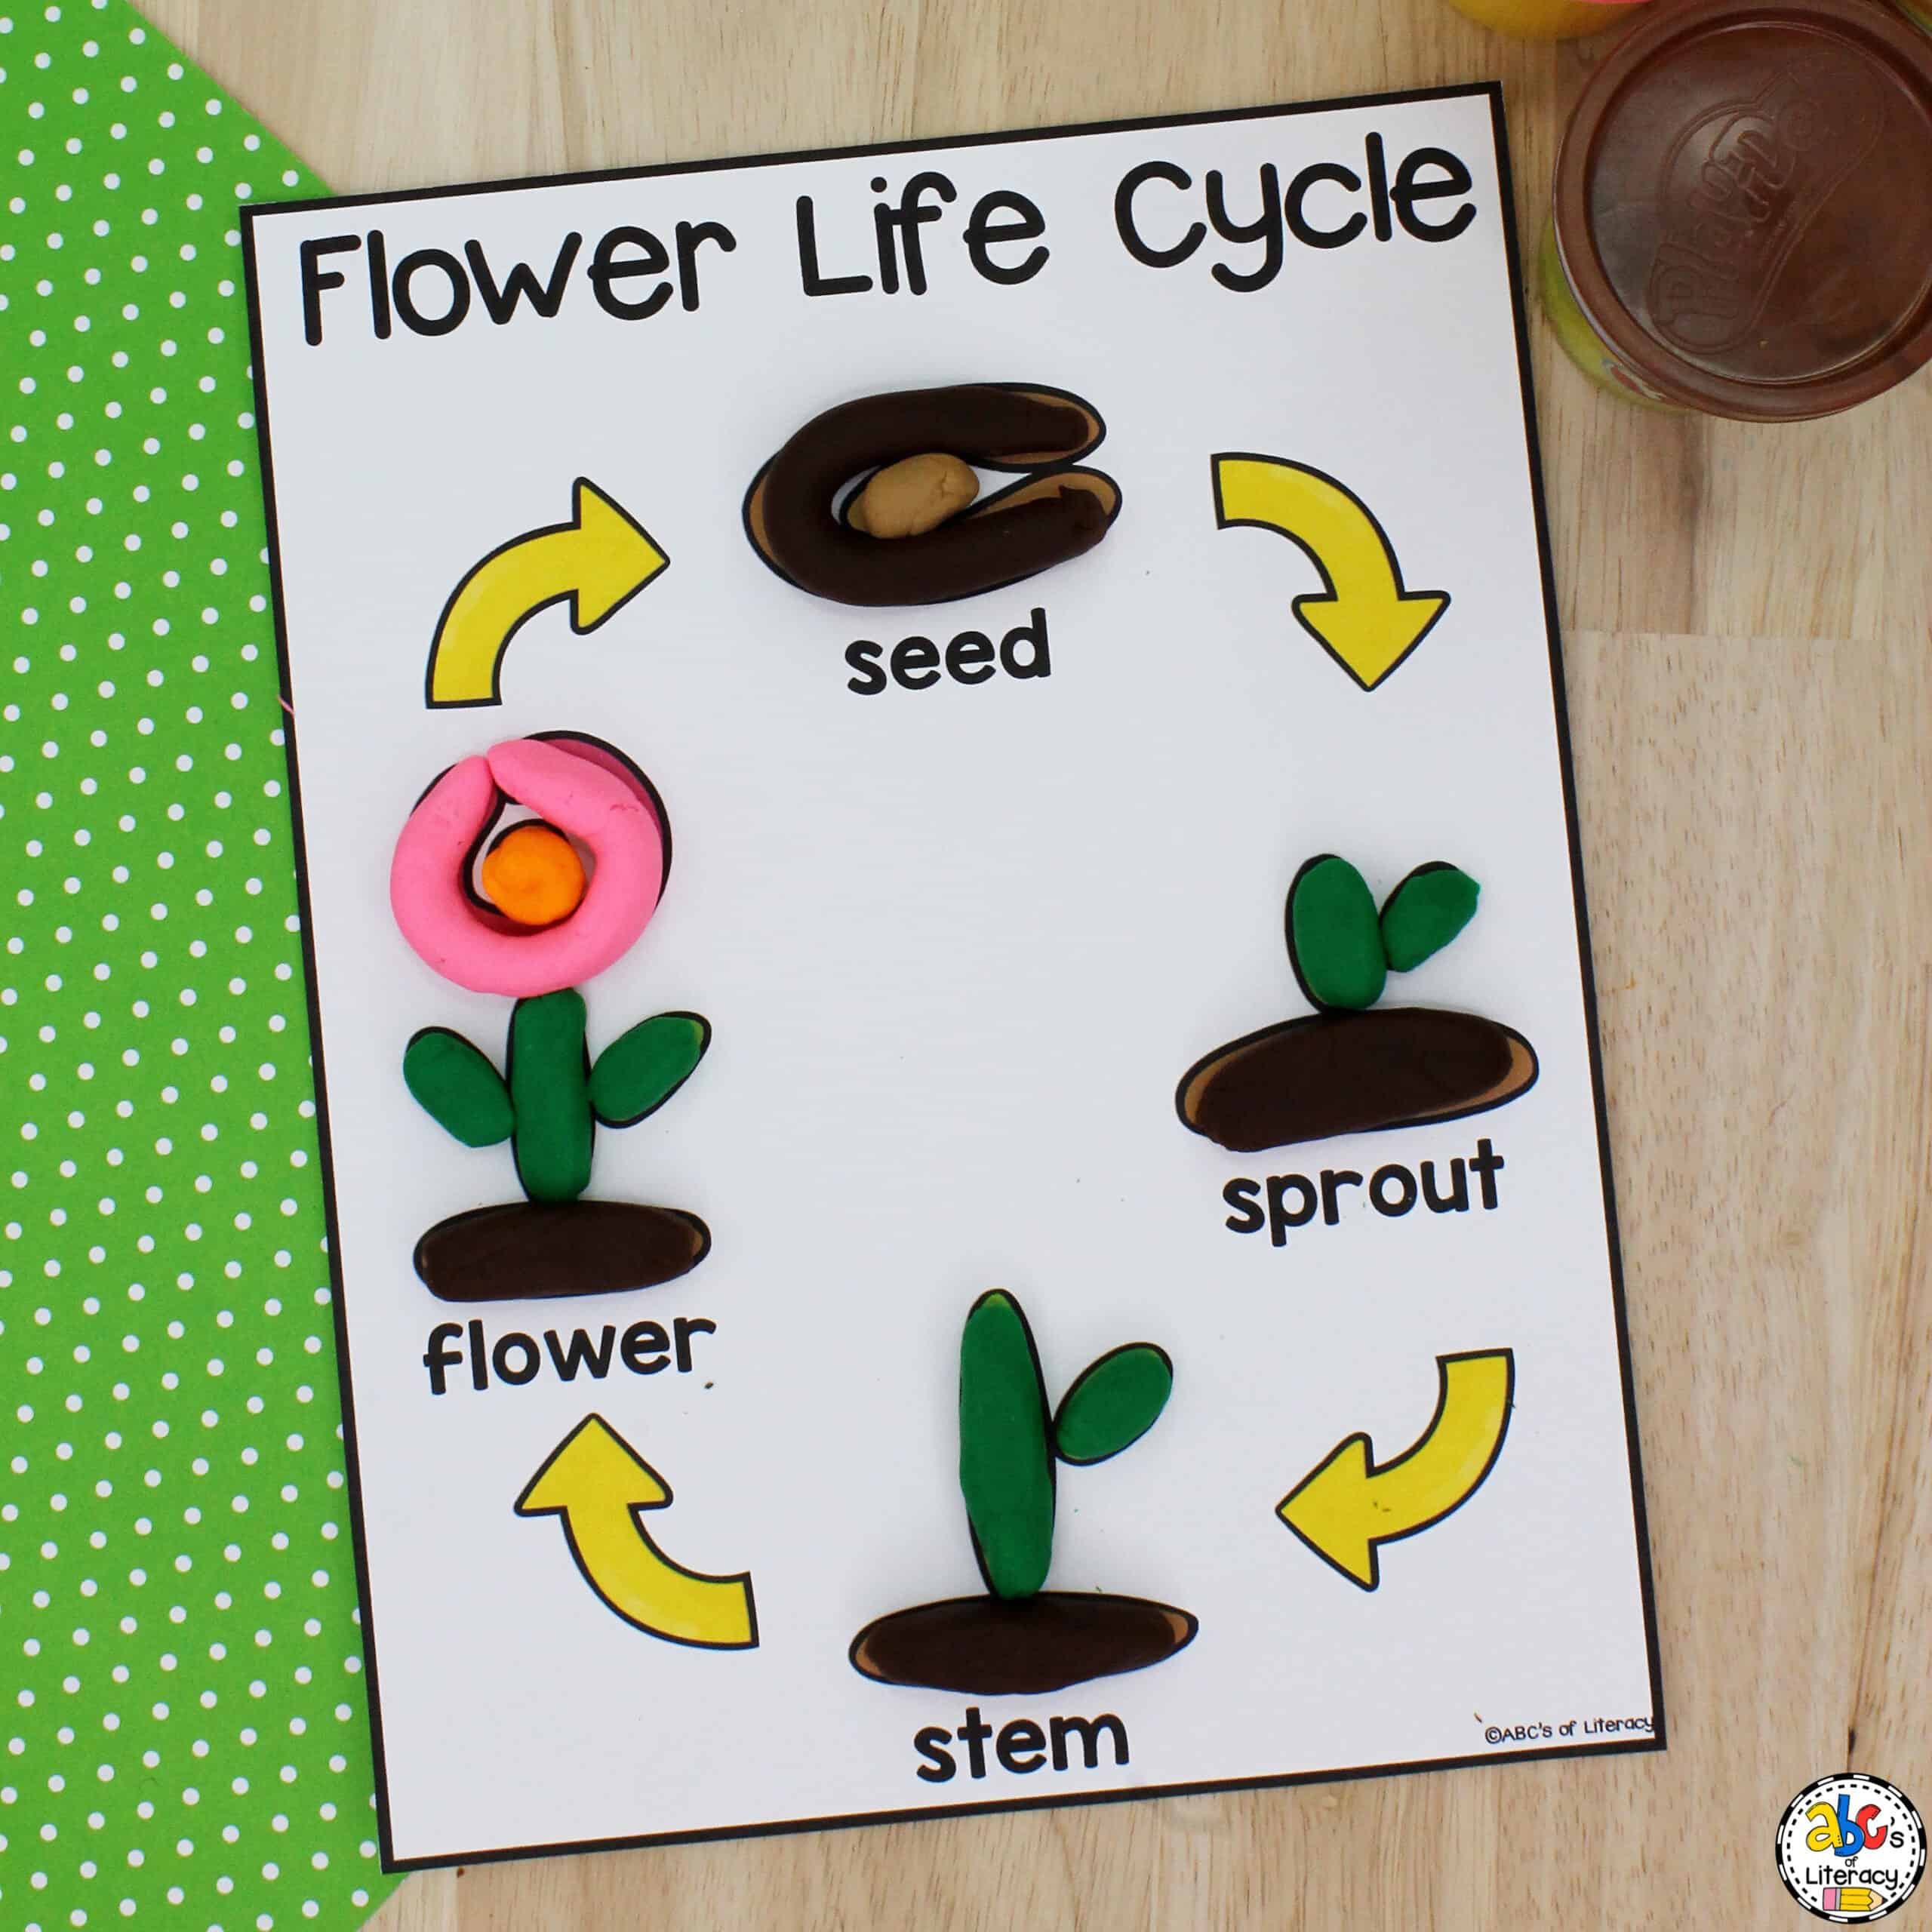 Flower Life Cycle Activity